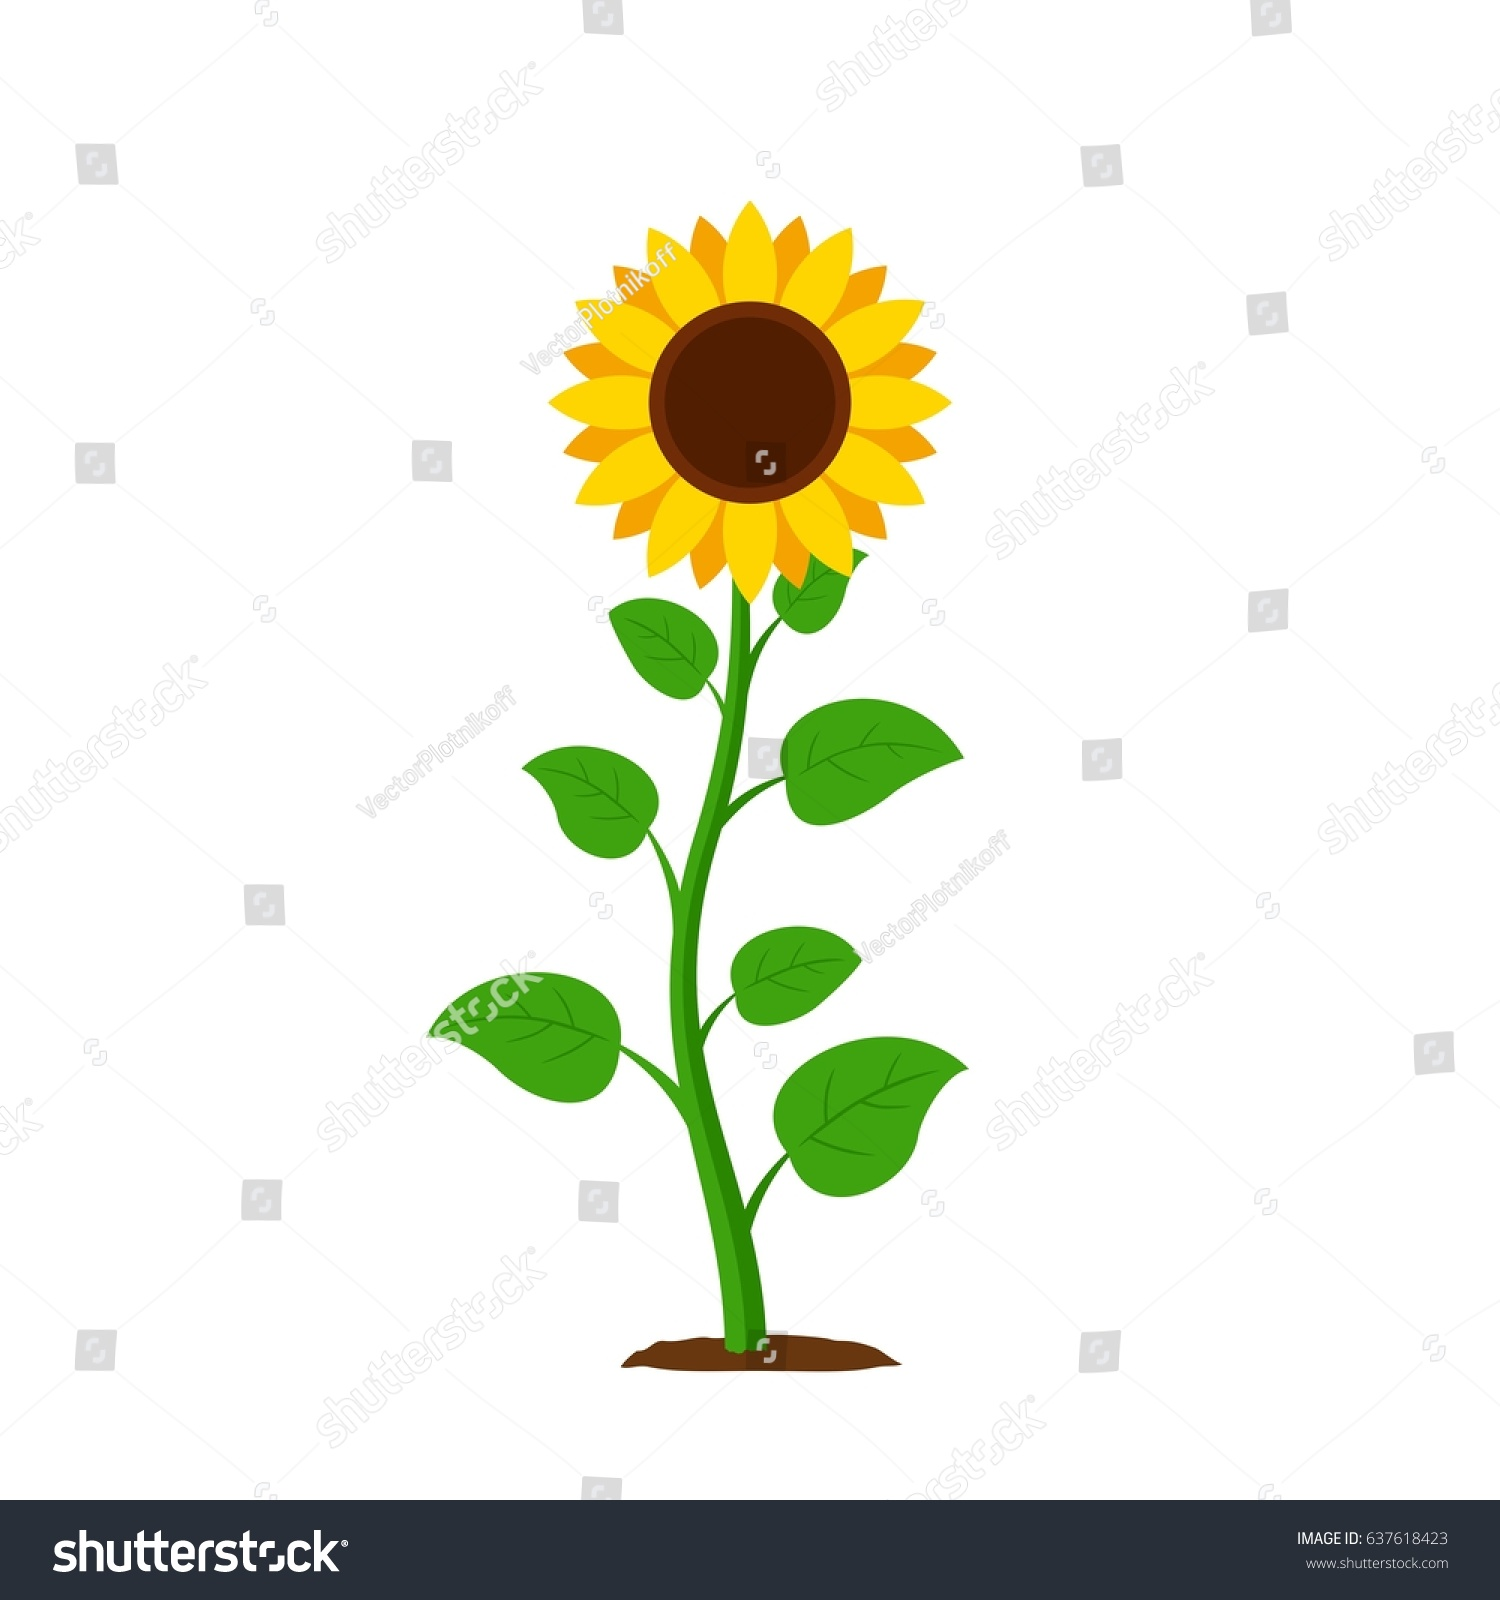 Sunflower with green leaves in flat style isolated on white background. Vector Illustration